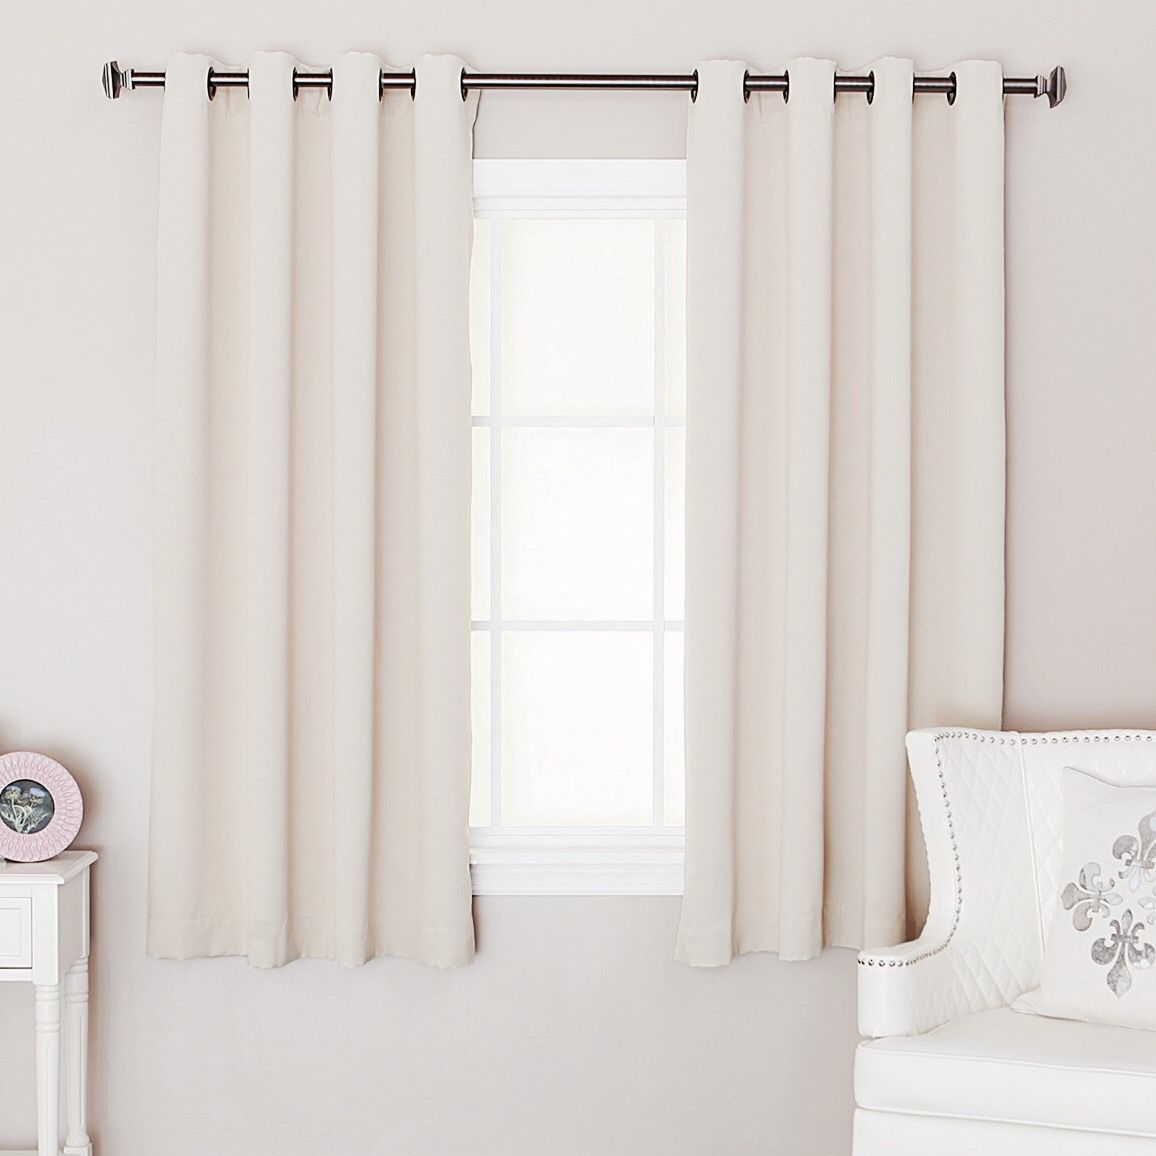 Bon 20$ @ Jc Penny But Use Code BuyNow88 And Its 16$ //// Simple Curtains For  Your Window So You Can Maybe Have Some Privacy, ...